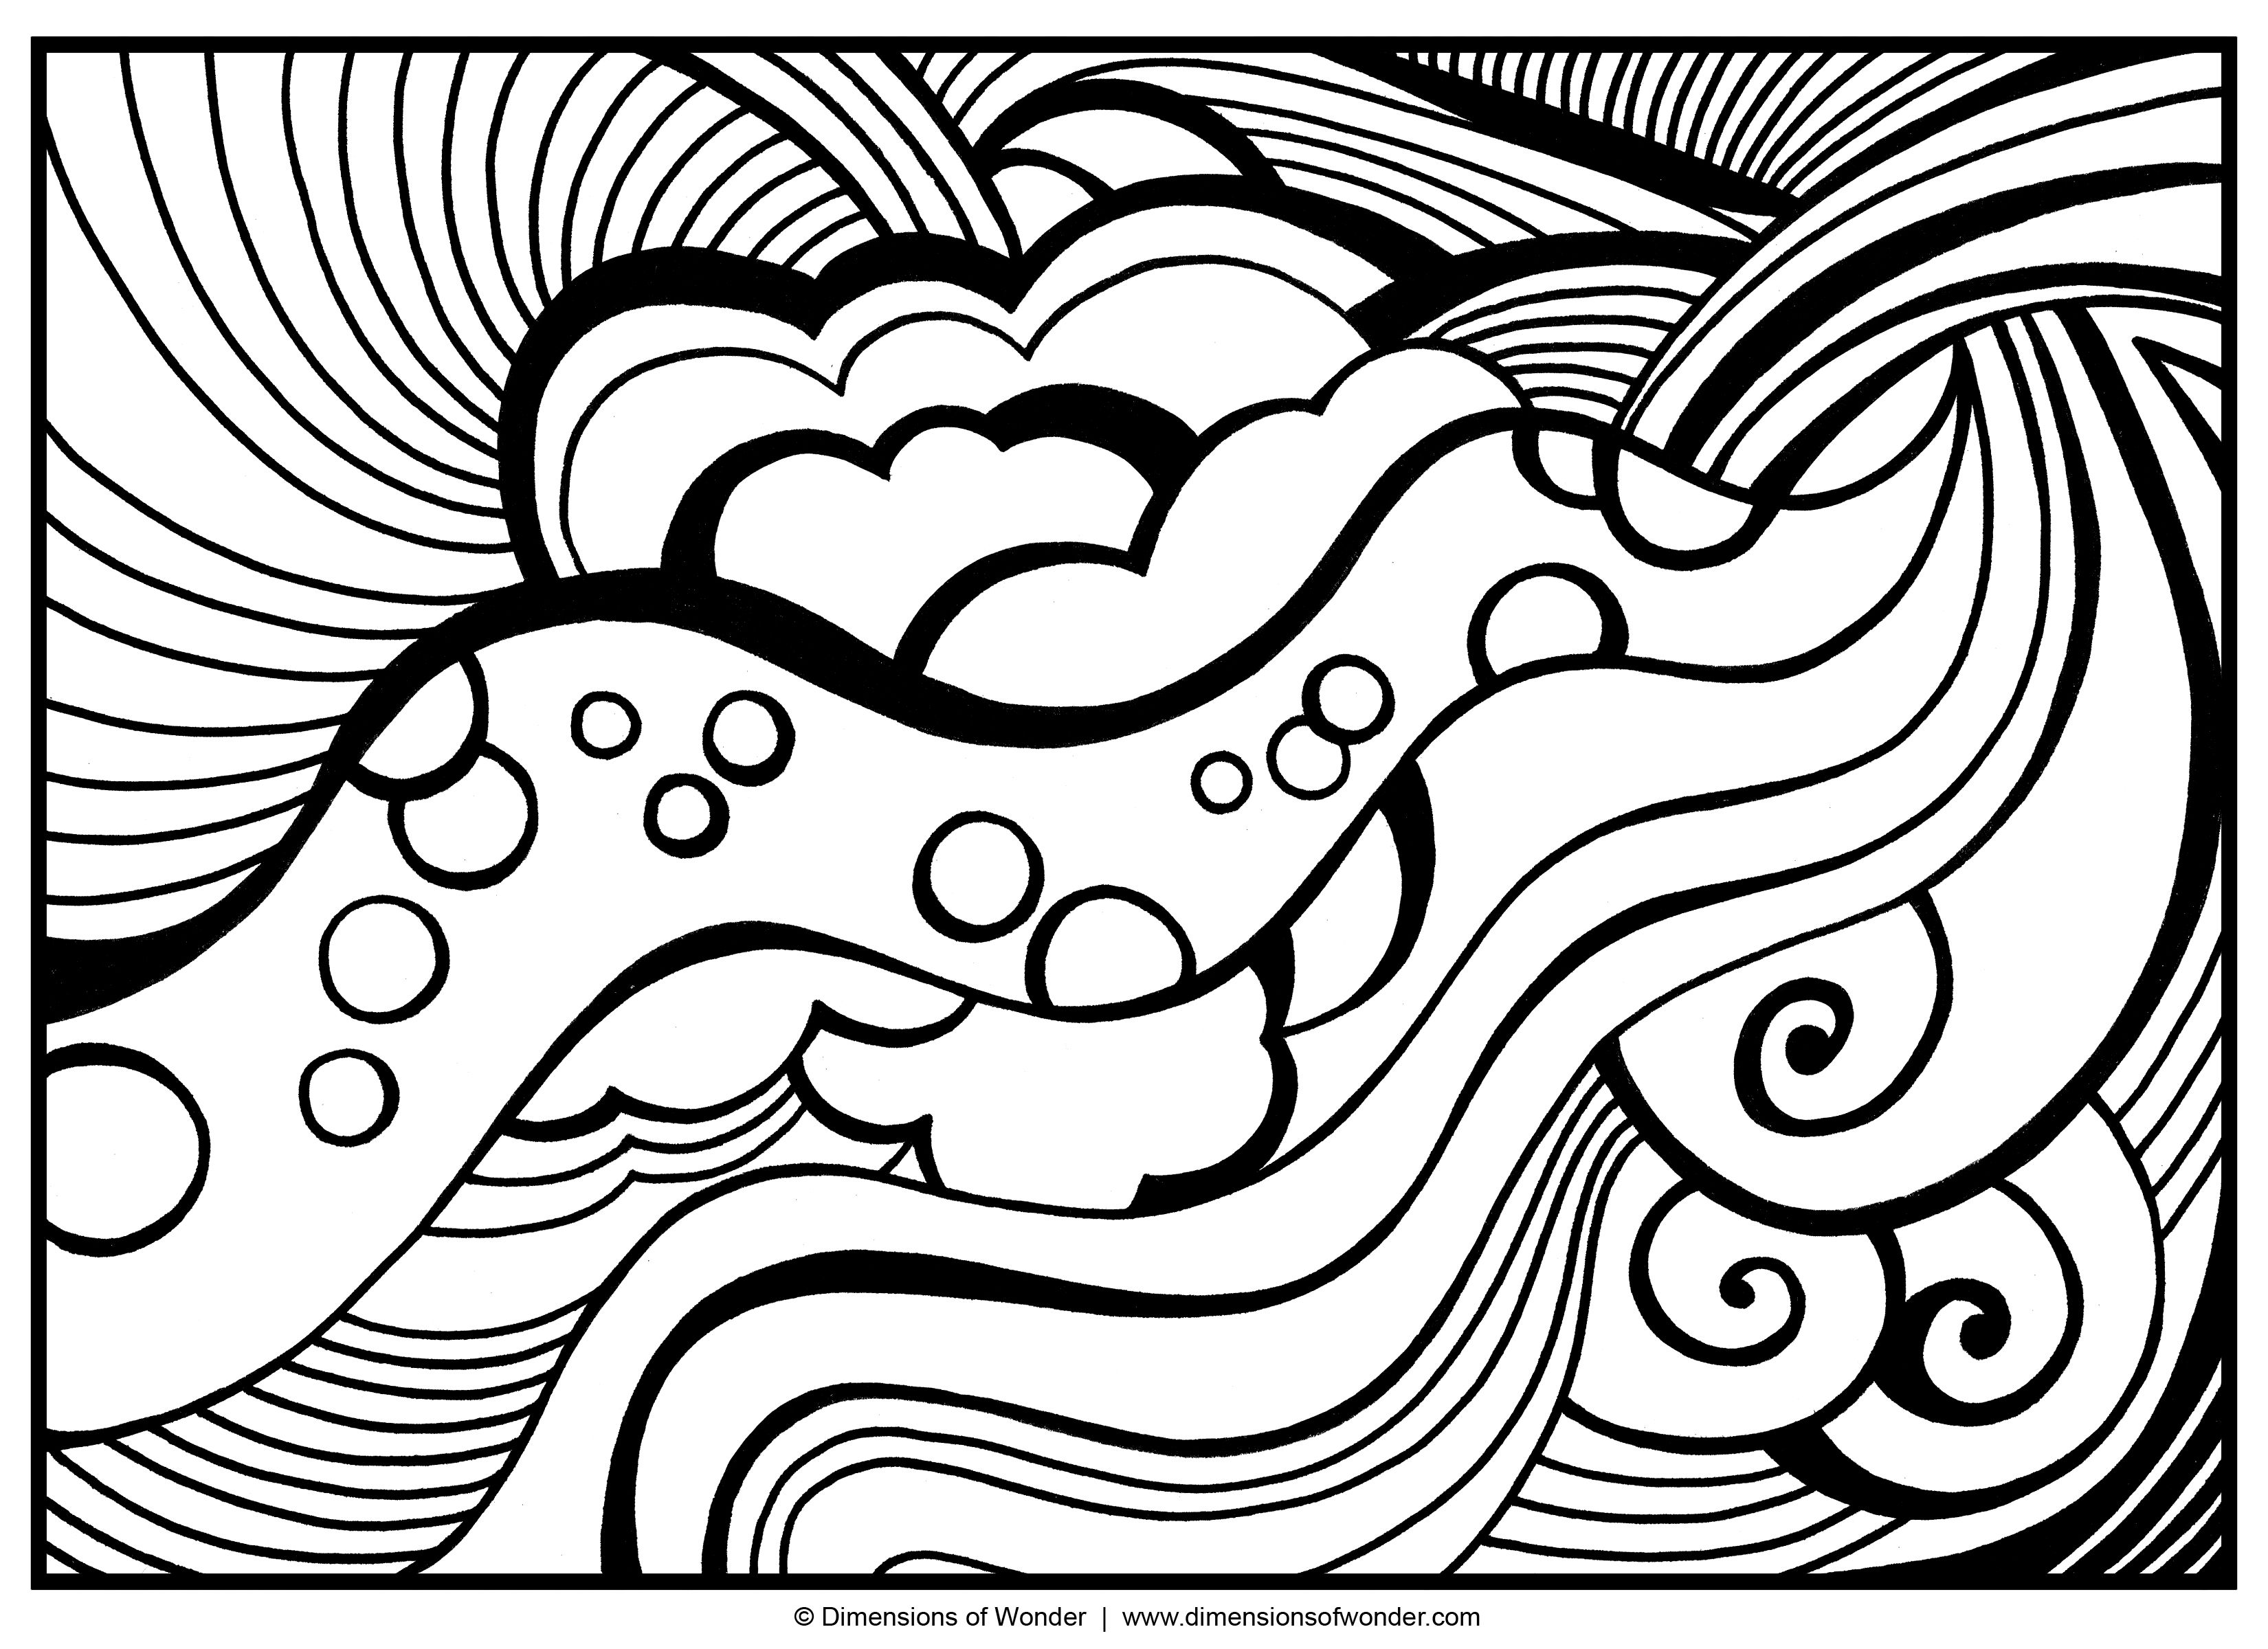 abstract coloring pages - Free Large Images | recipes | Pinterest ...